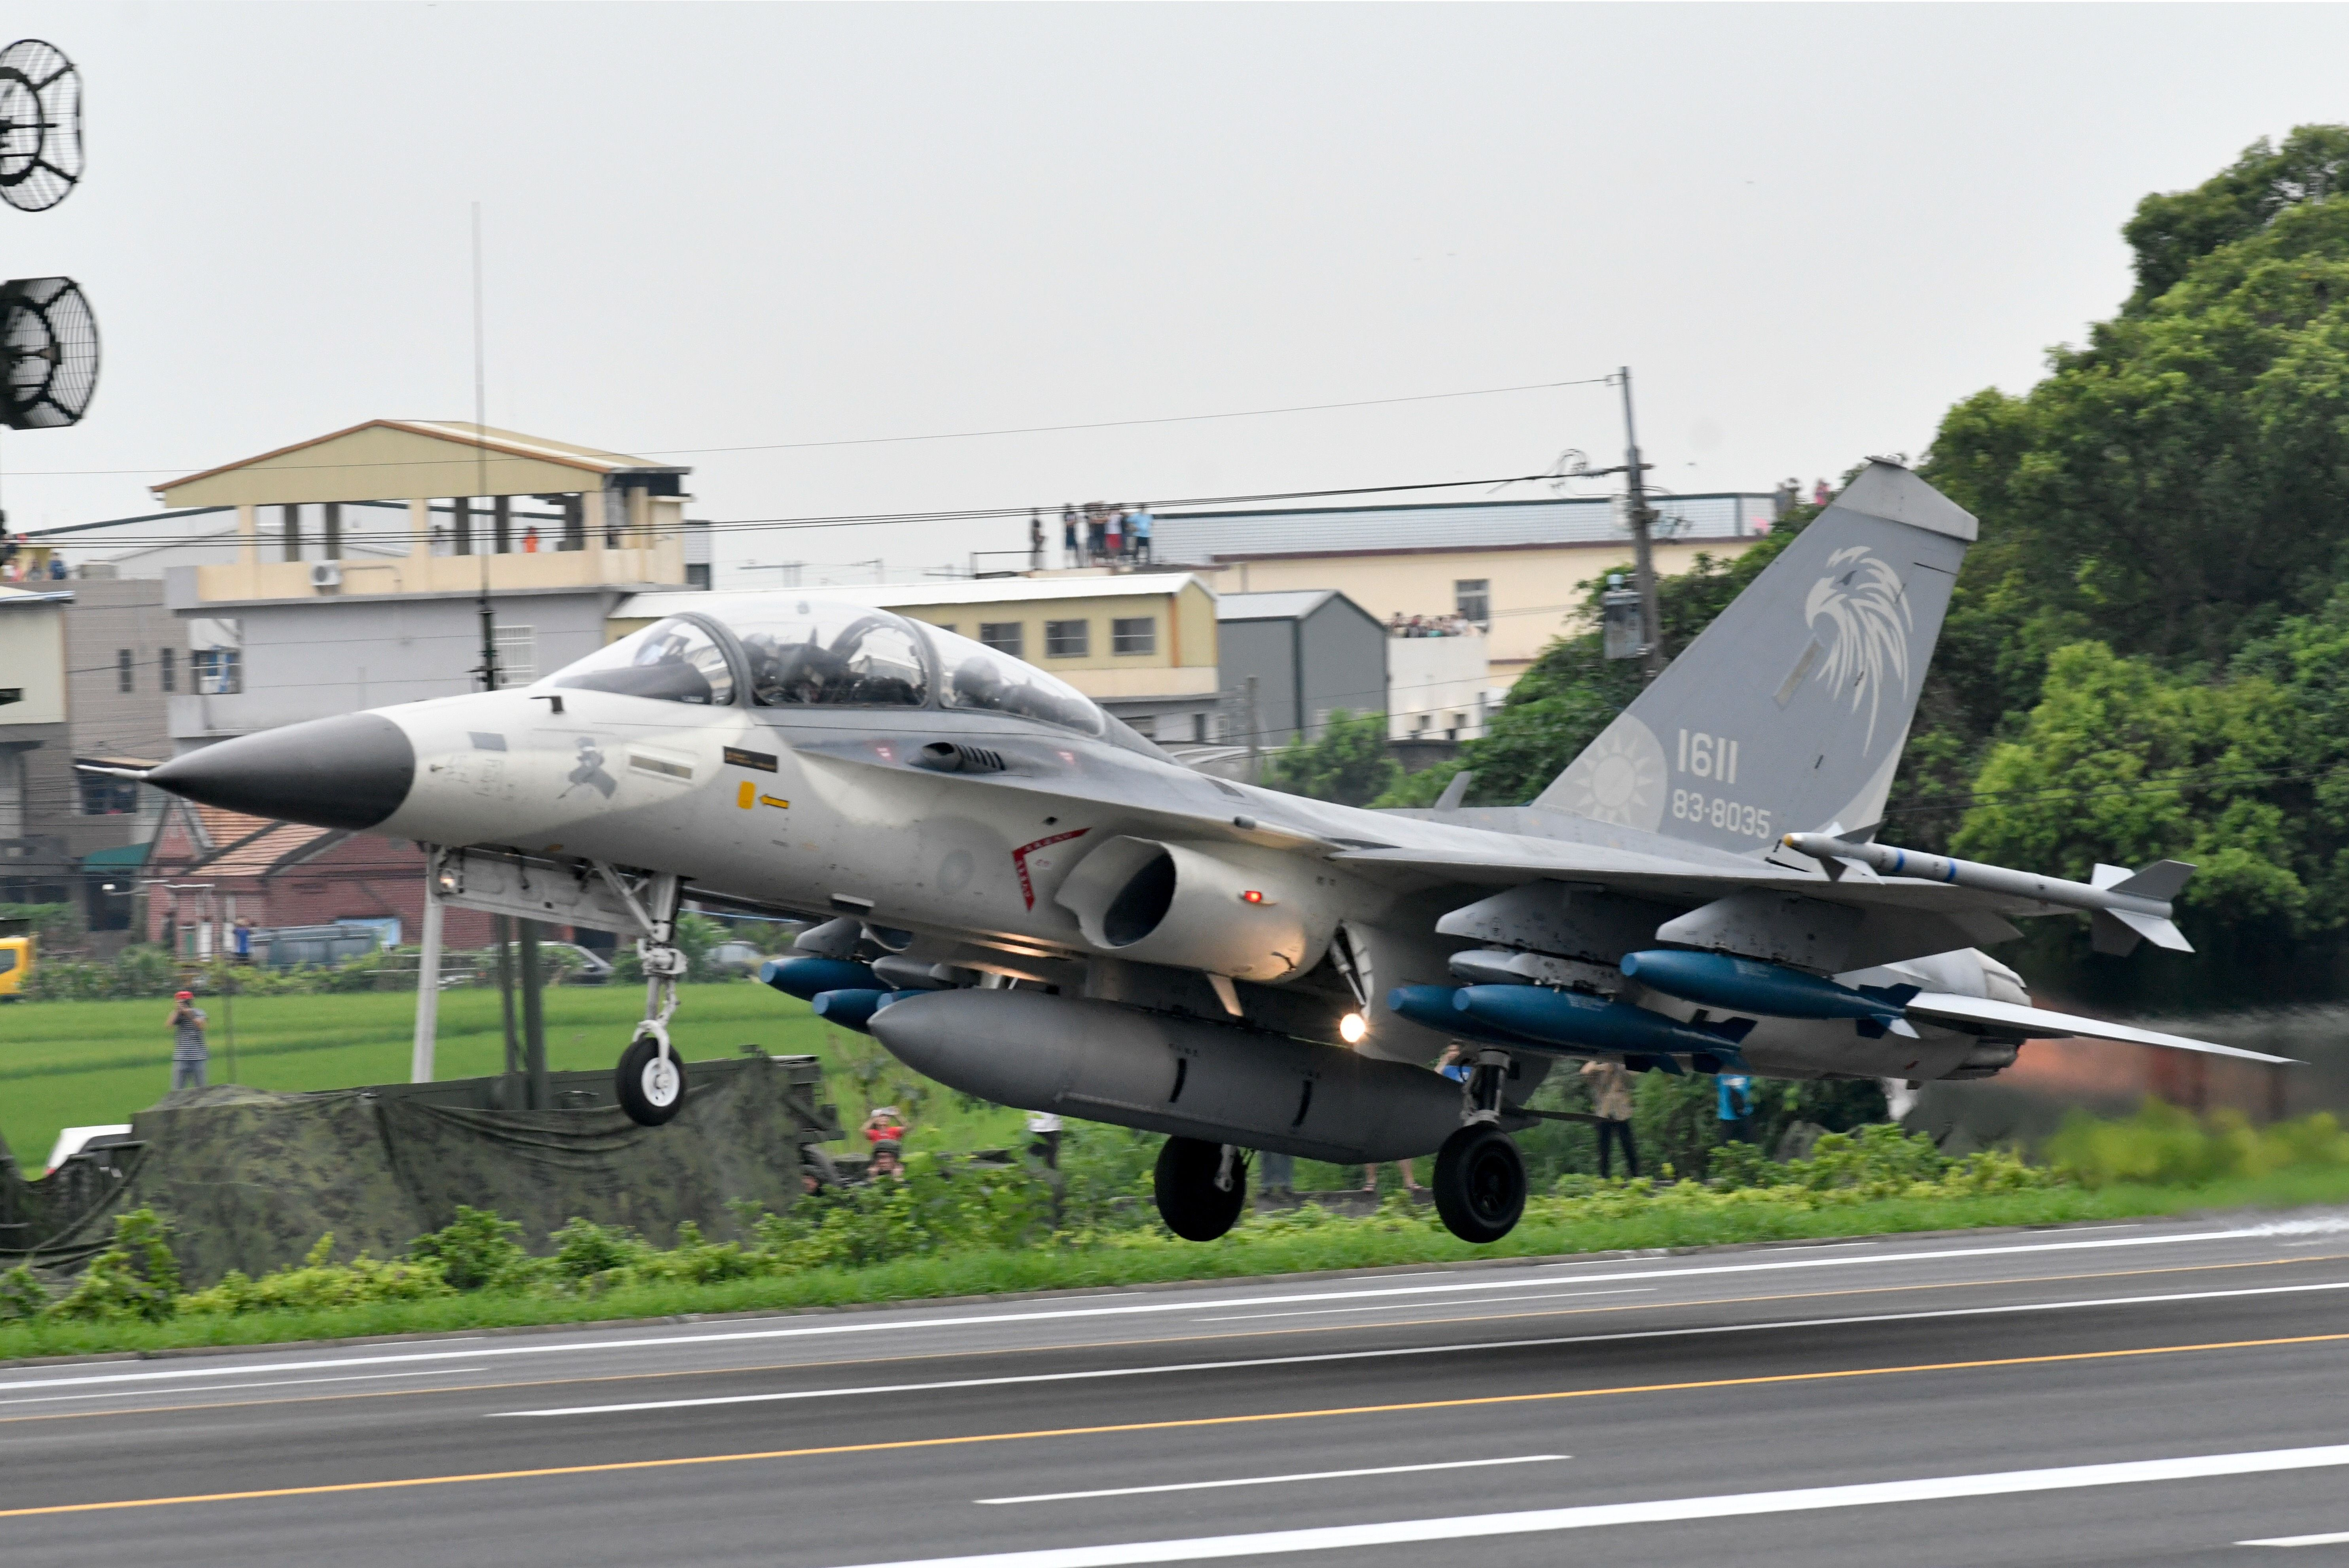 Taiwan Converts Highway Into a Jet Fighter Runway